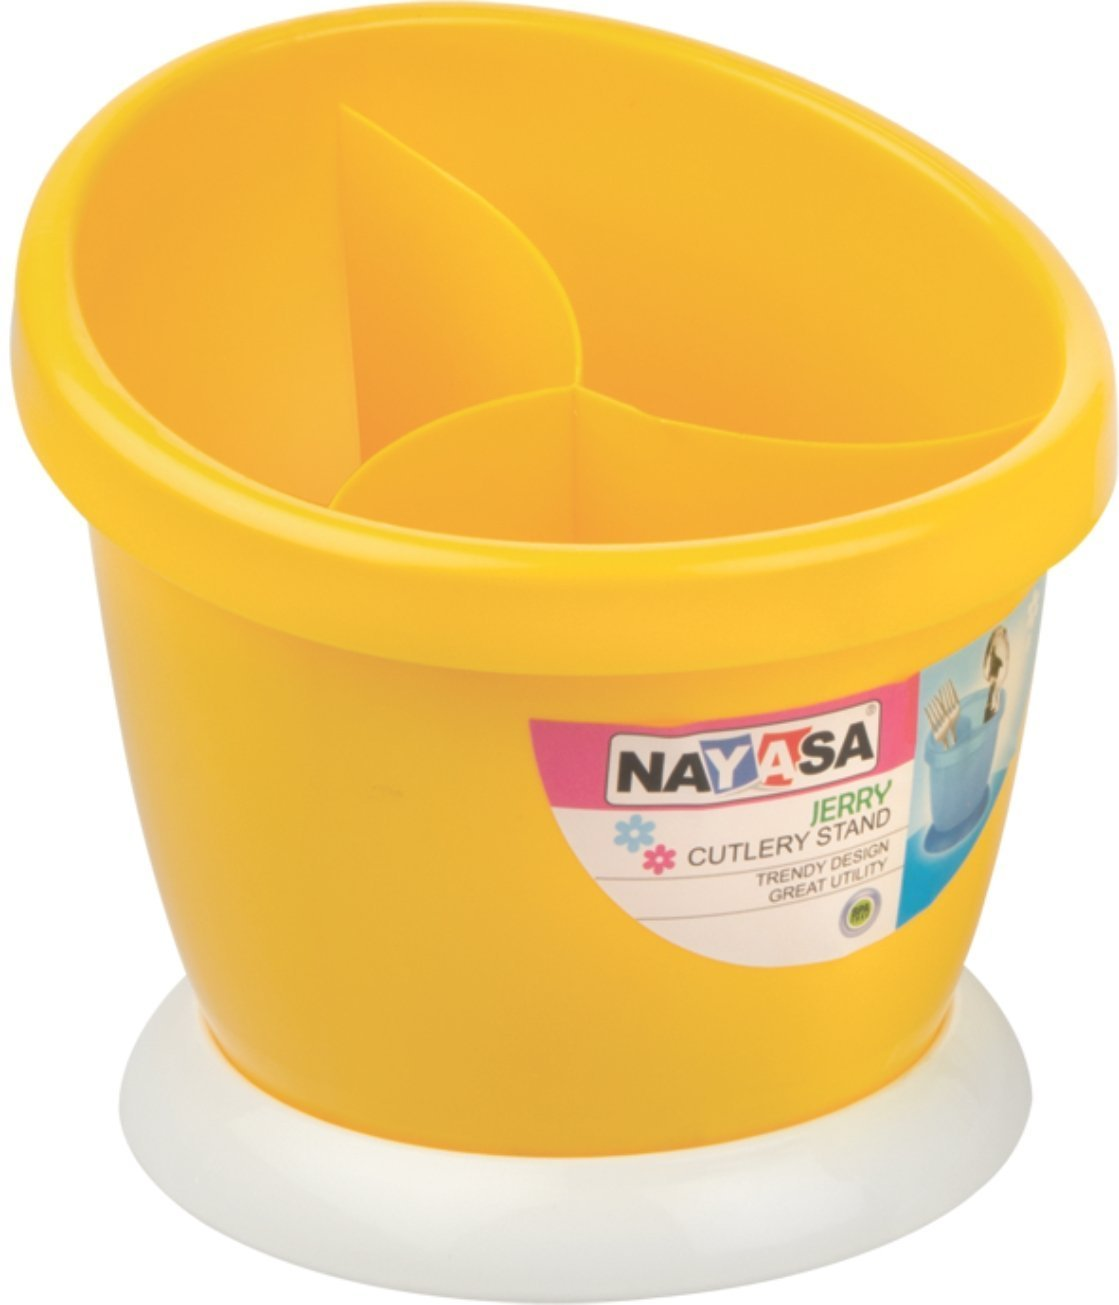 Nayasa Jerry Plastic Cutlery Stand, Yellow